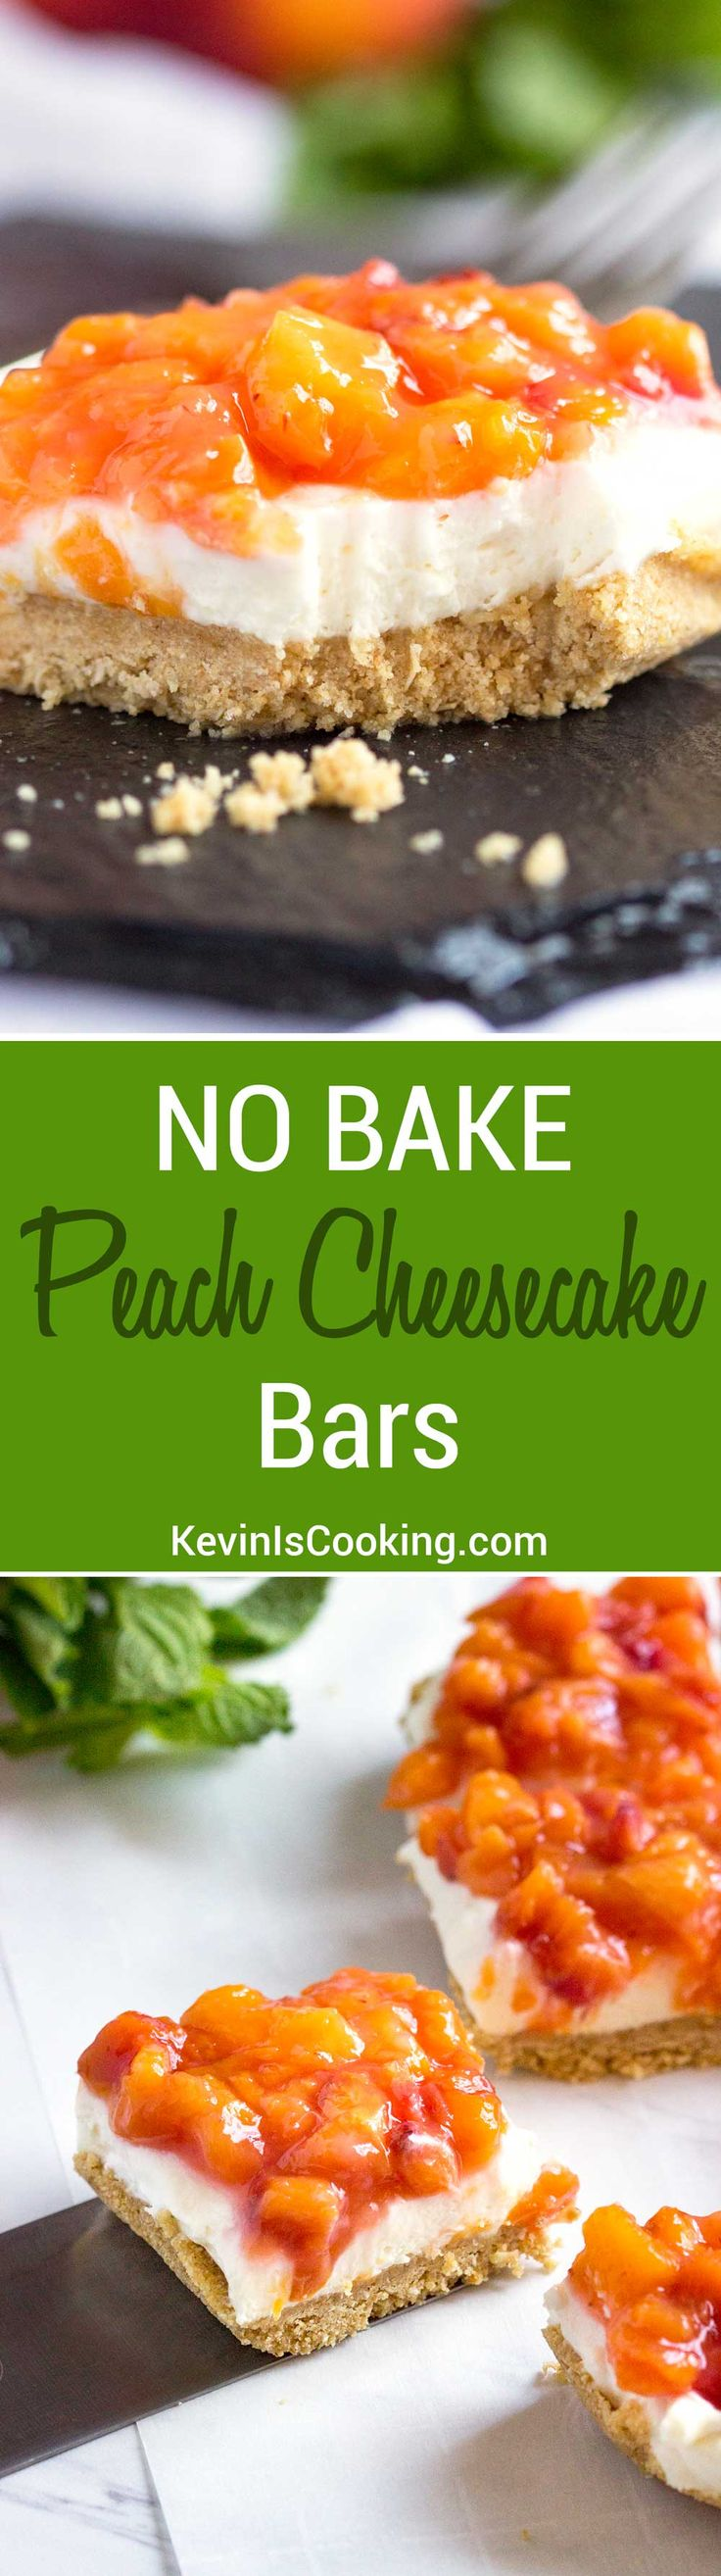 Fresh peaches top this amazingly fluffy no bake cheesecake bar with a ground oat an graham cracker base. So good! Double this, they go quick every time!